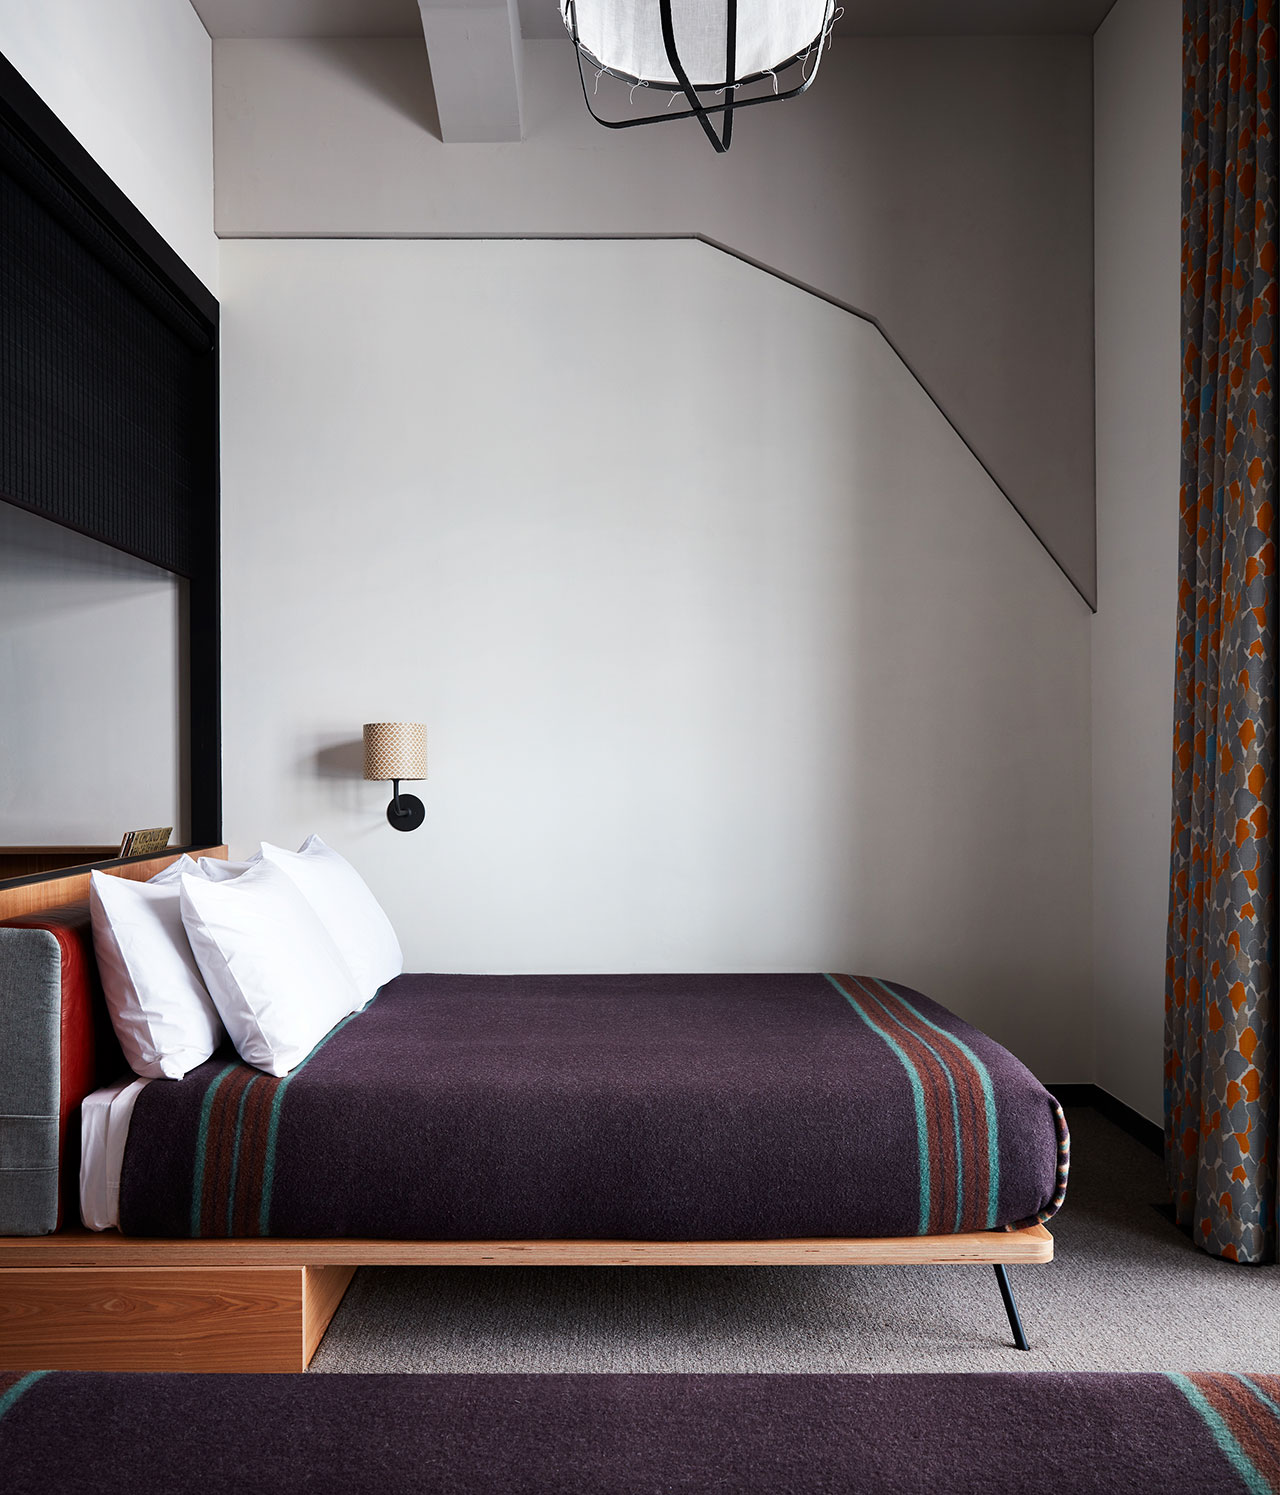 Ace Hotel Kyoto. Guestroom. Photo by Stephen Kent Johnson.